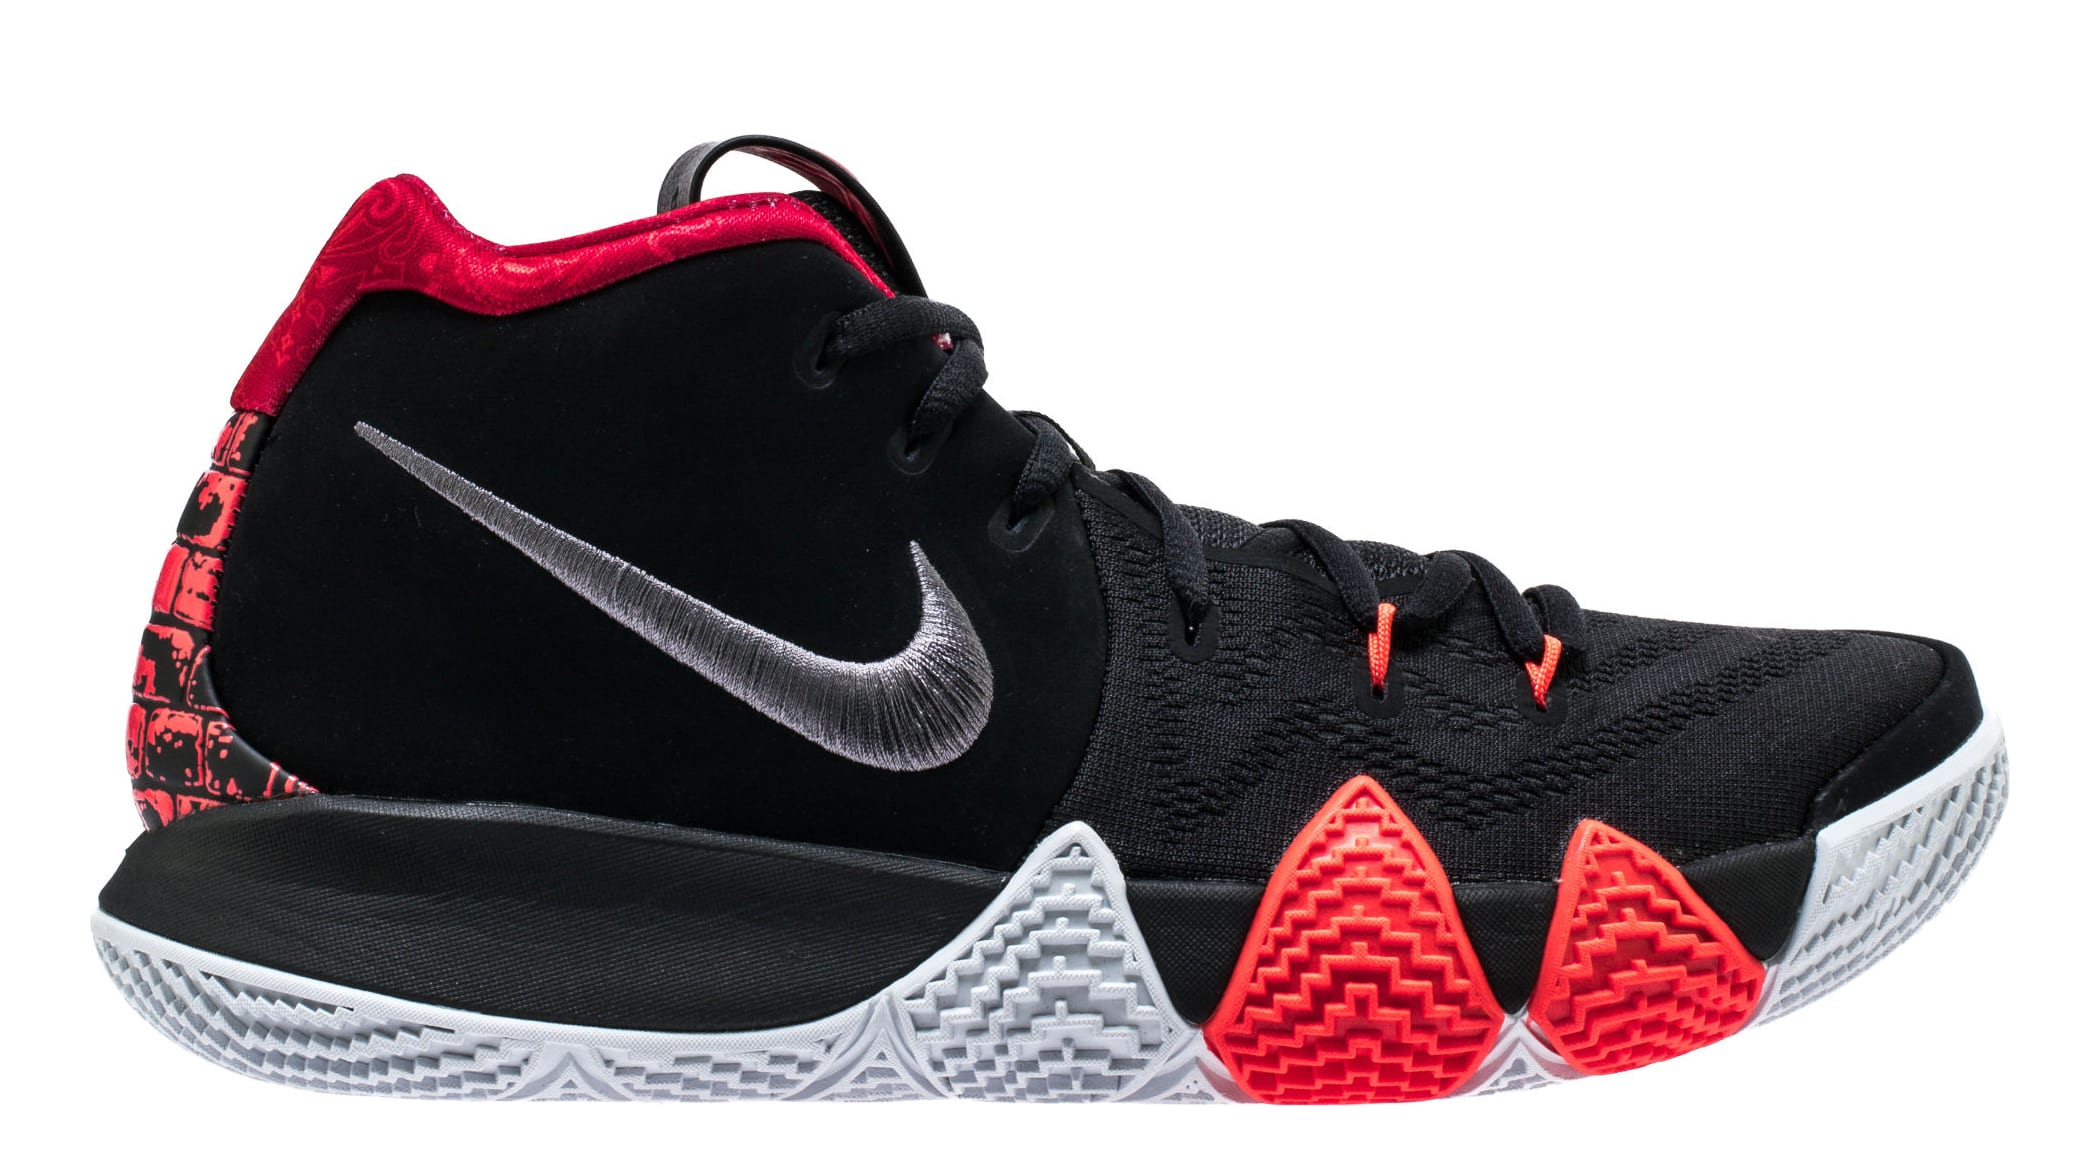 cheap for discount 594e6 6a6b2 Nike Kyrie 4 'Black/Dark Grey' 943806-005 Release Date ...